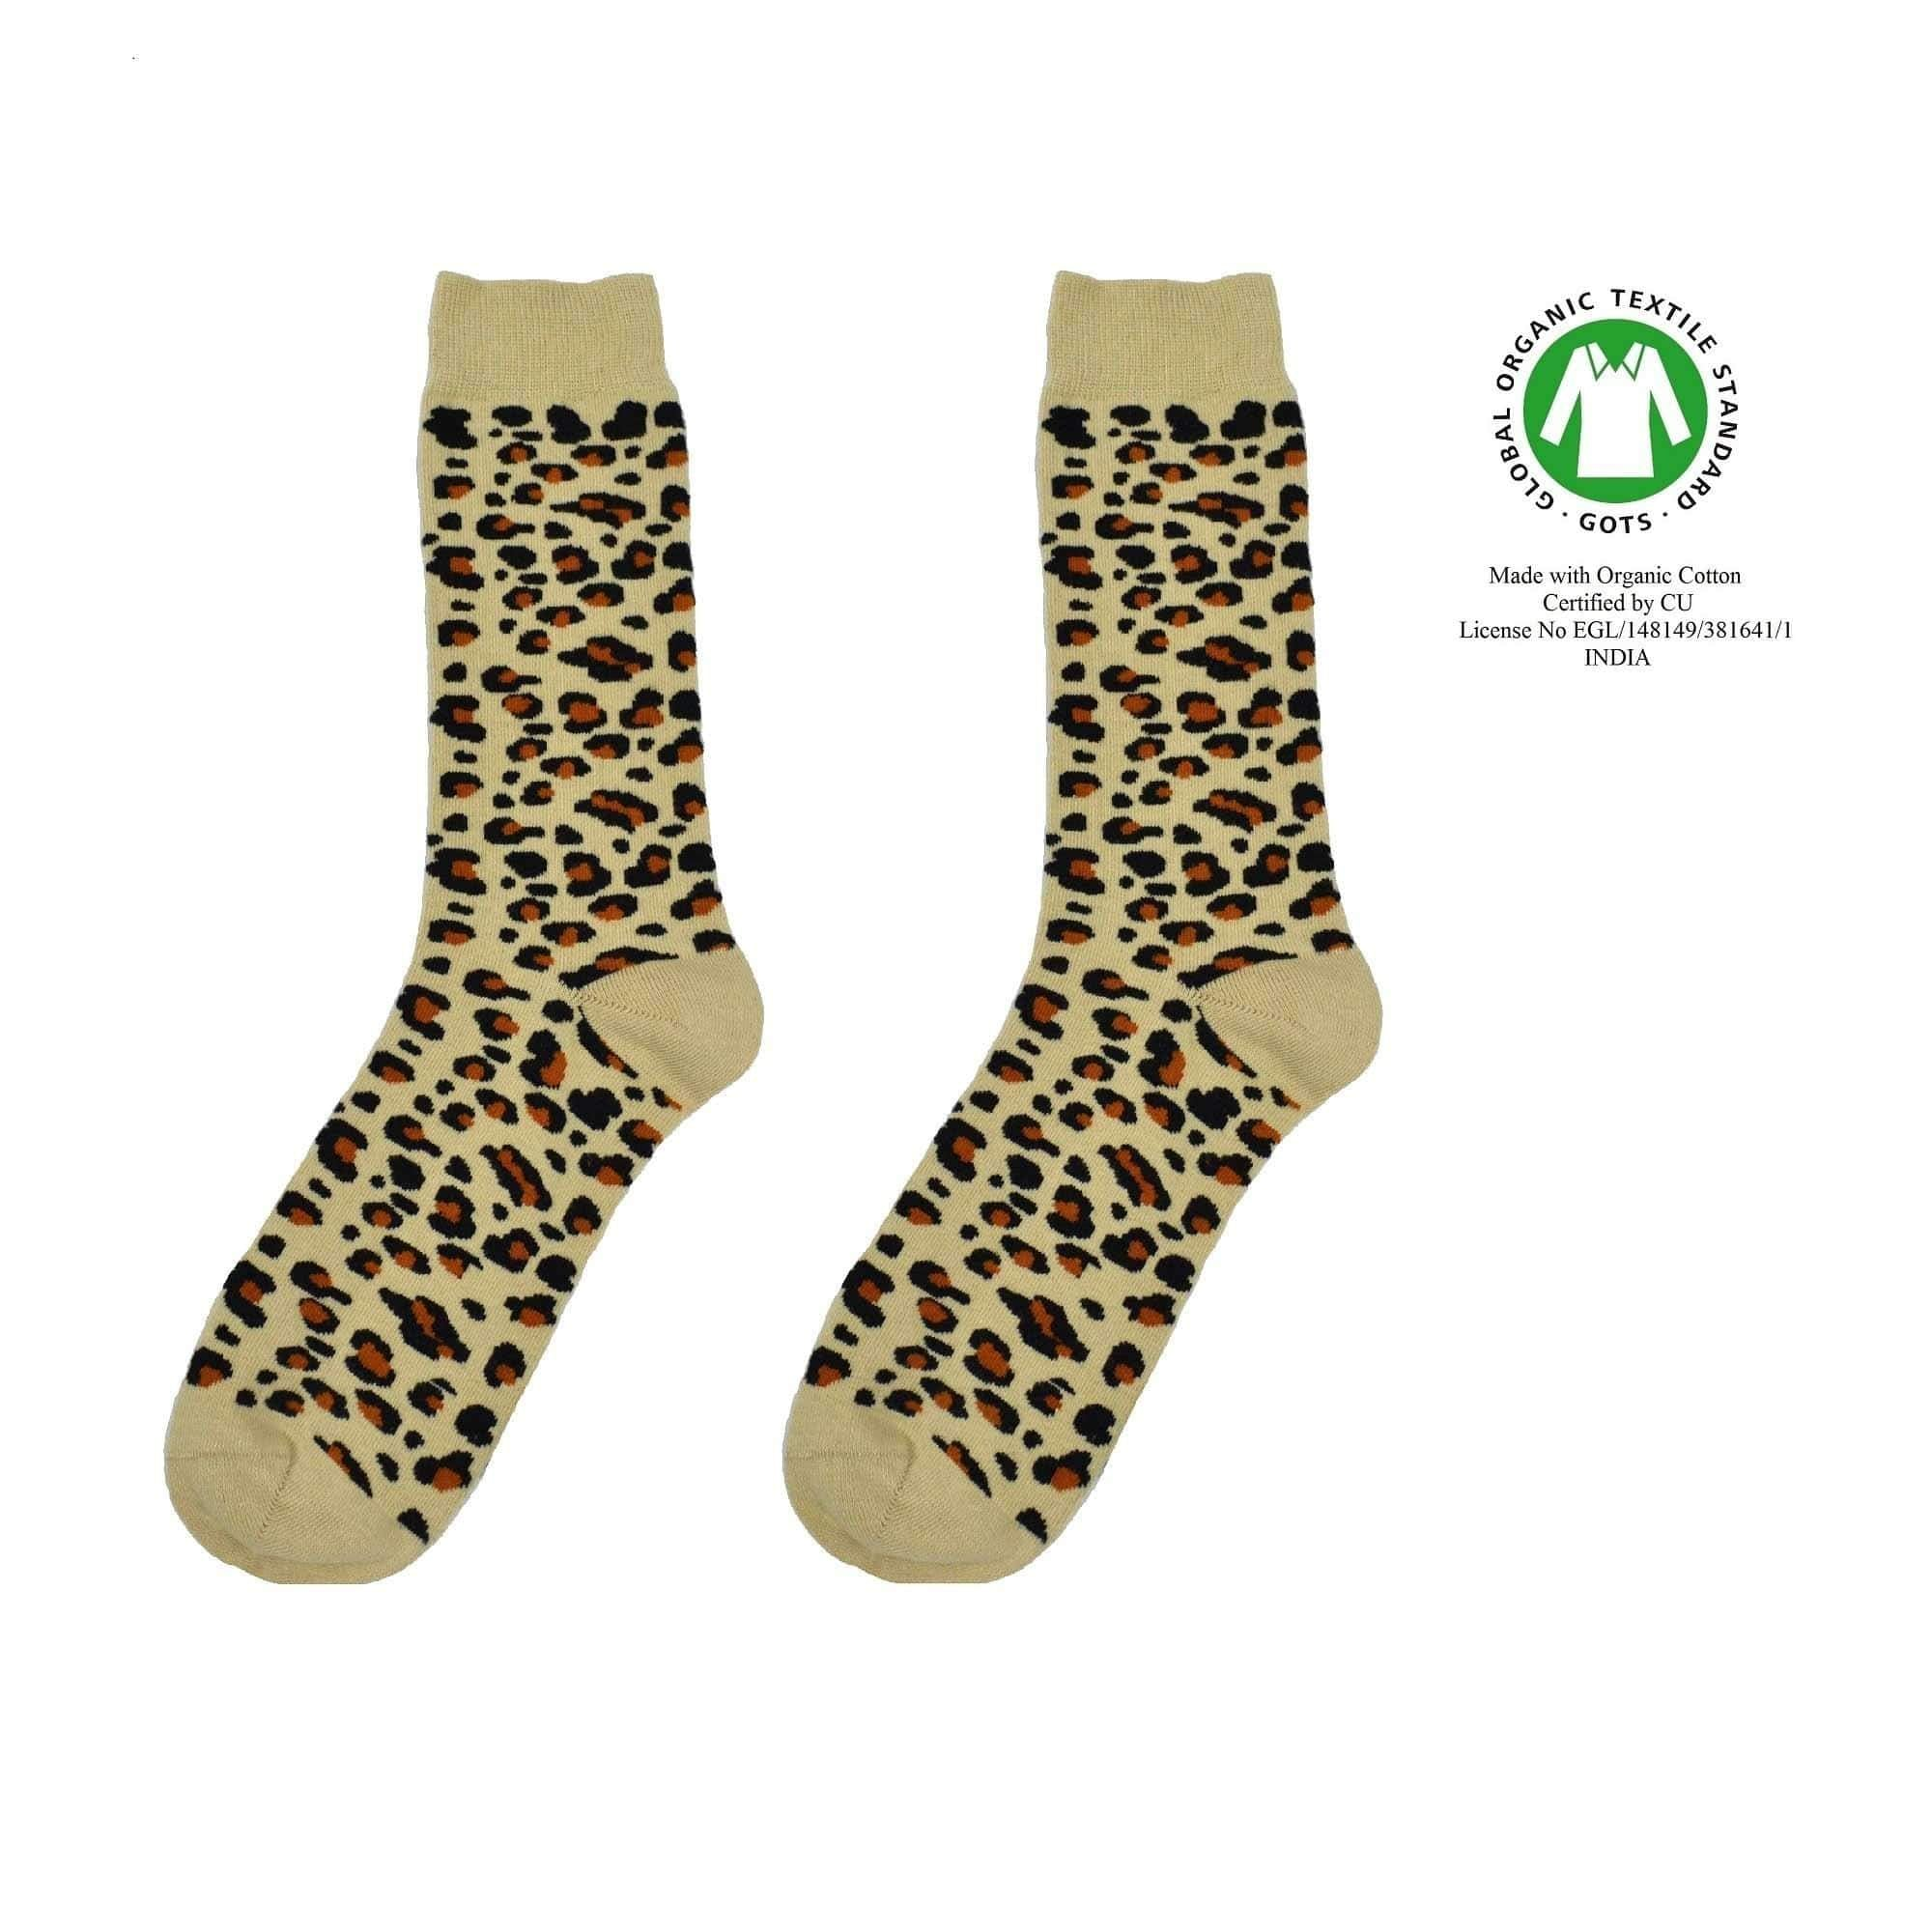 Organic Socks of Sweden sock Sandström Socks. Organic Cotton. sustainable fashion ethical fashion